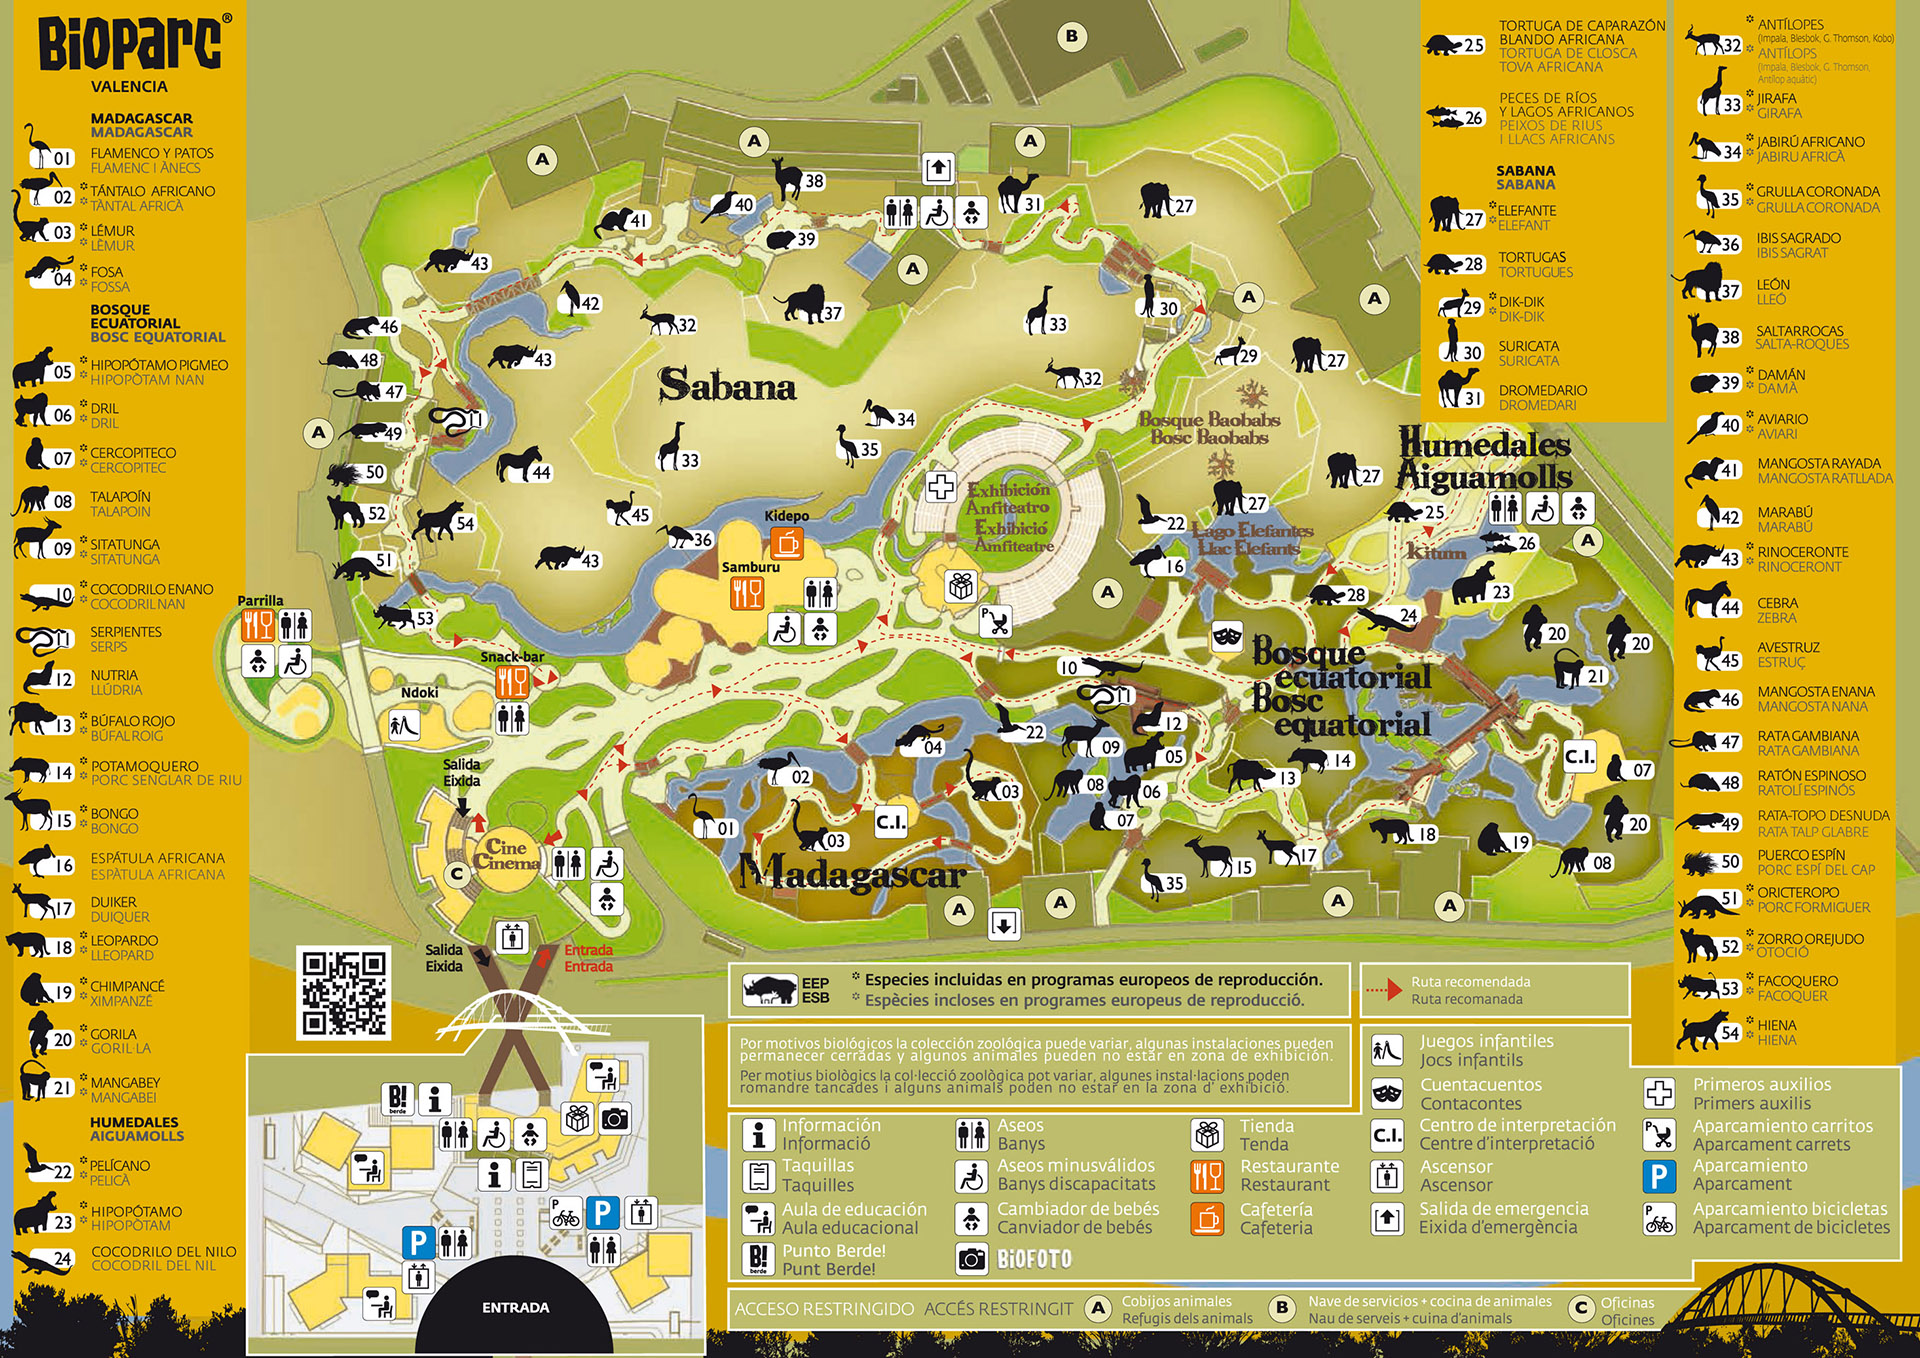 Zoologic natural park bioparc in valencia guide of valencia - Bioparc de valencia ...